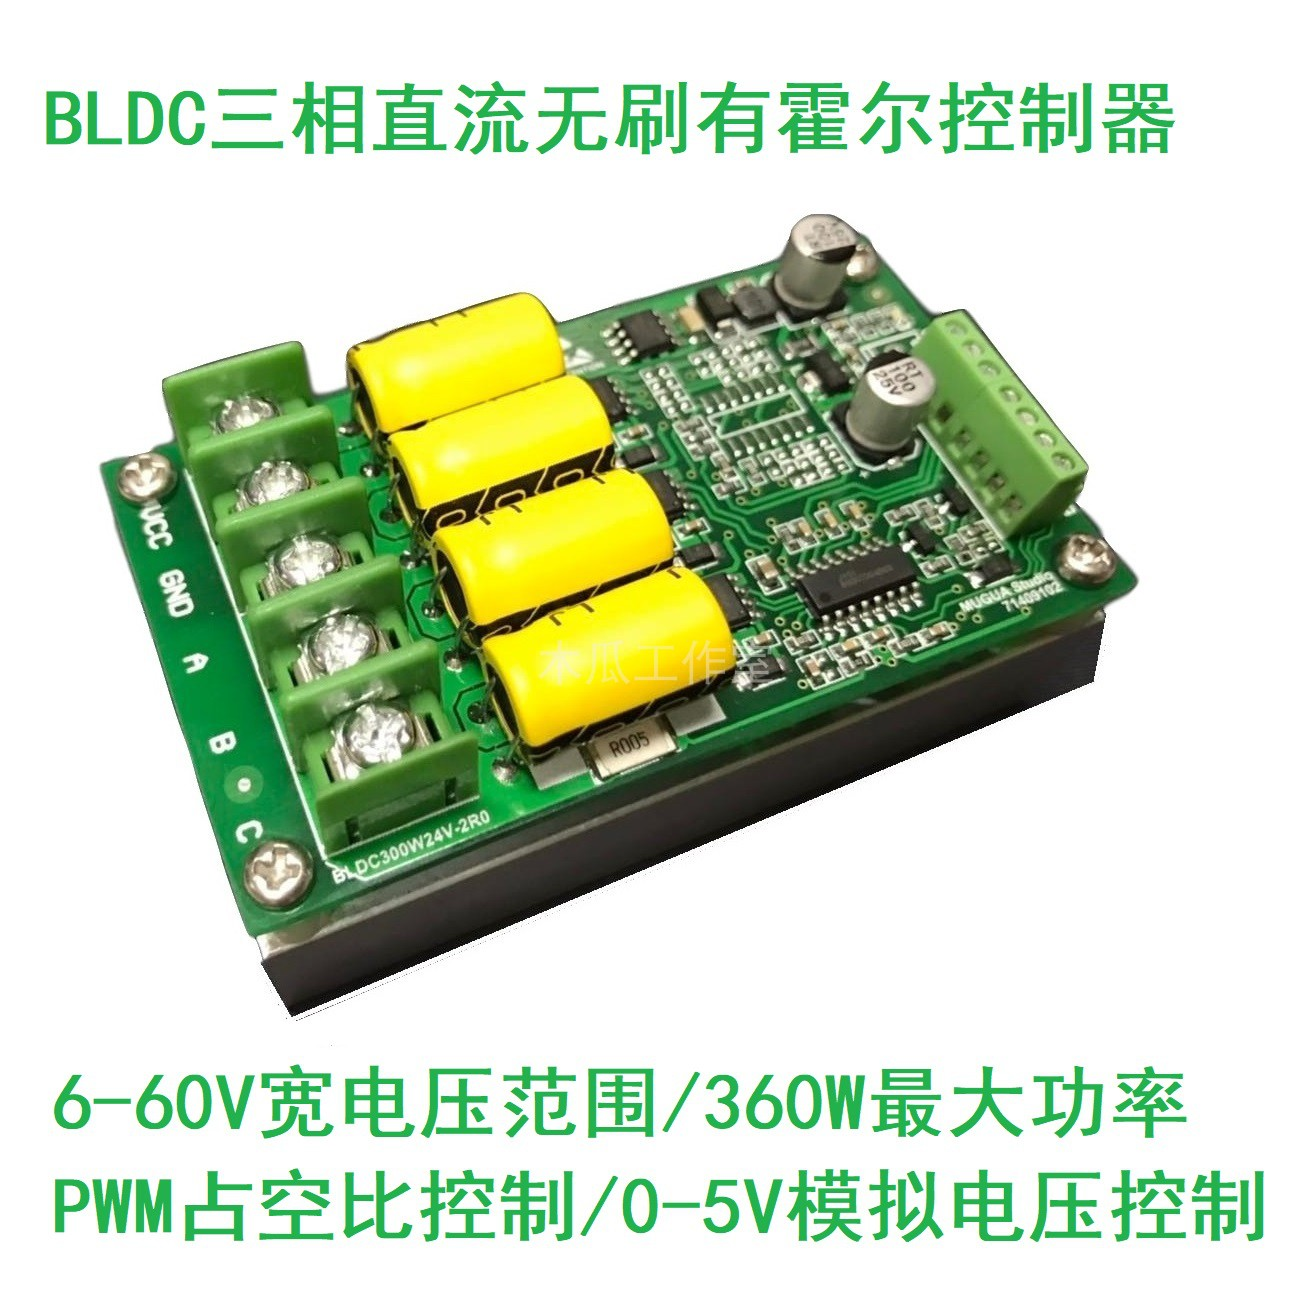 BLDC Three phase DC Brushless with Sensor Hall 24V Motor Fan Turbine Motor Speed Drive Controller|Personal Care Appliance Parts| |  - title=